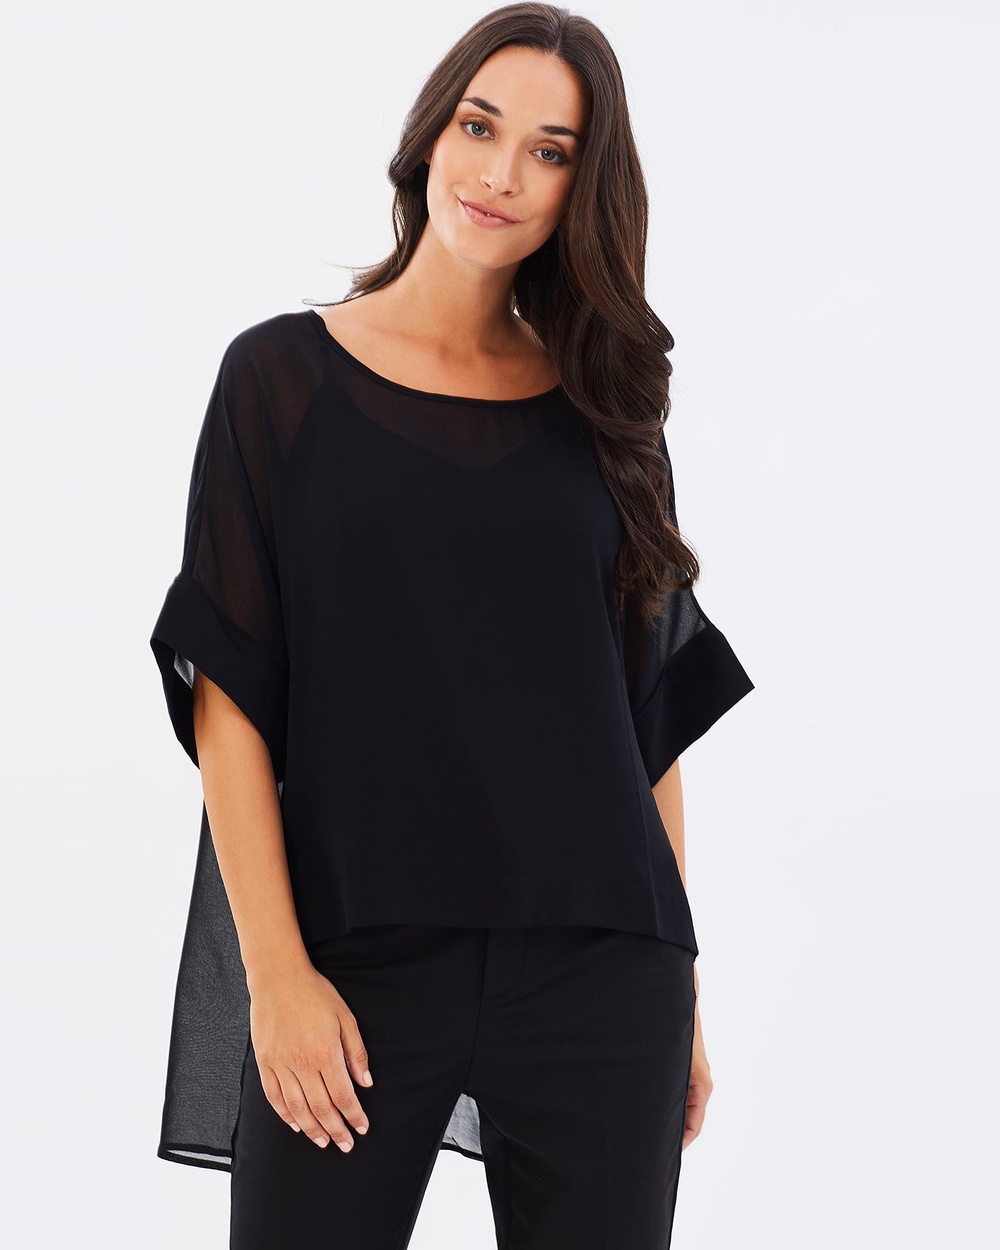 Faye Black Label Liberty Layering Top Tops Black Liberty Layering Top